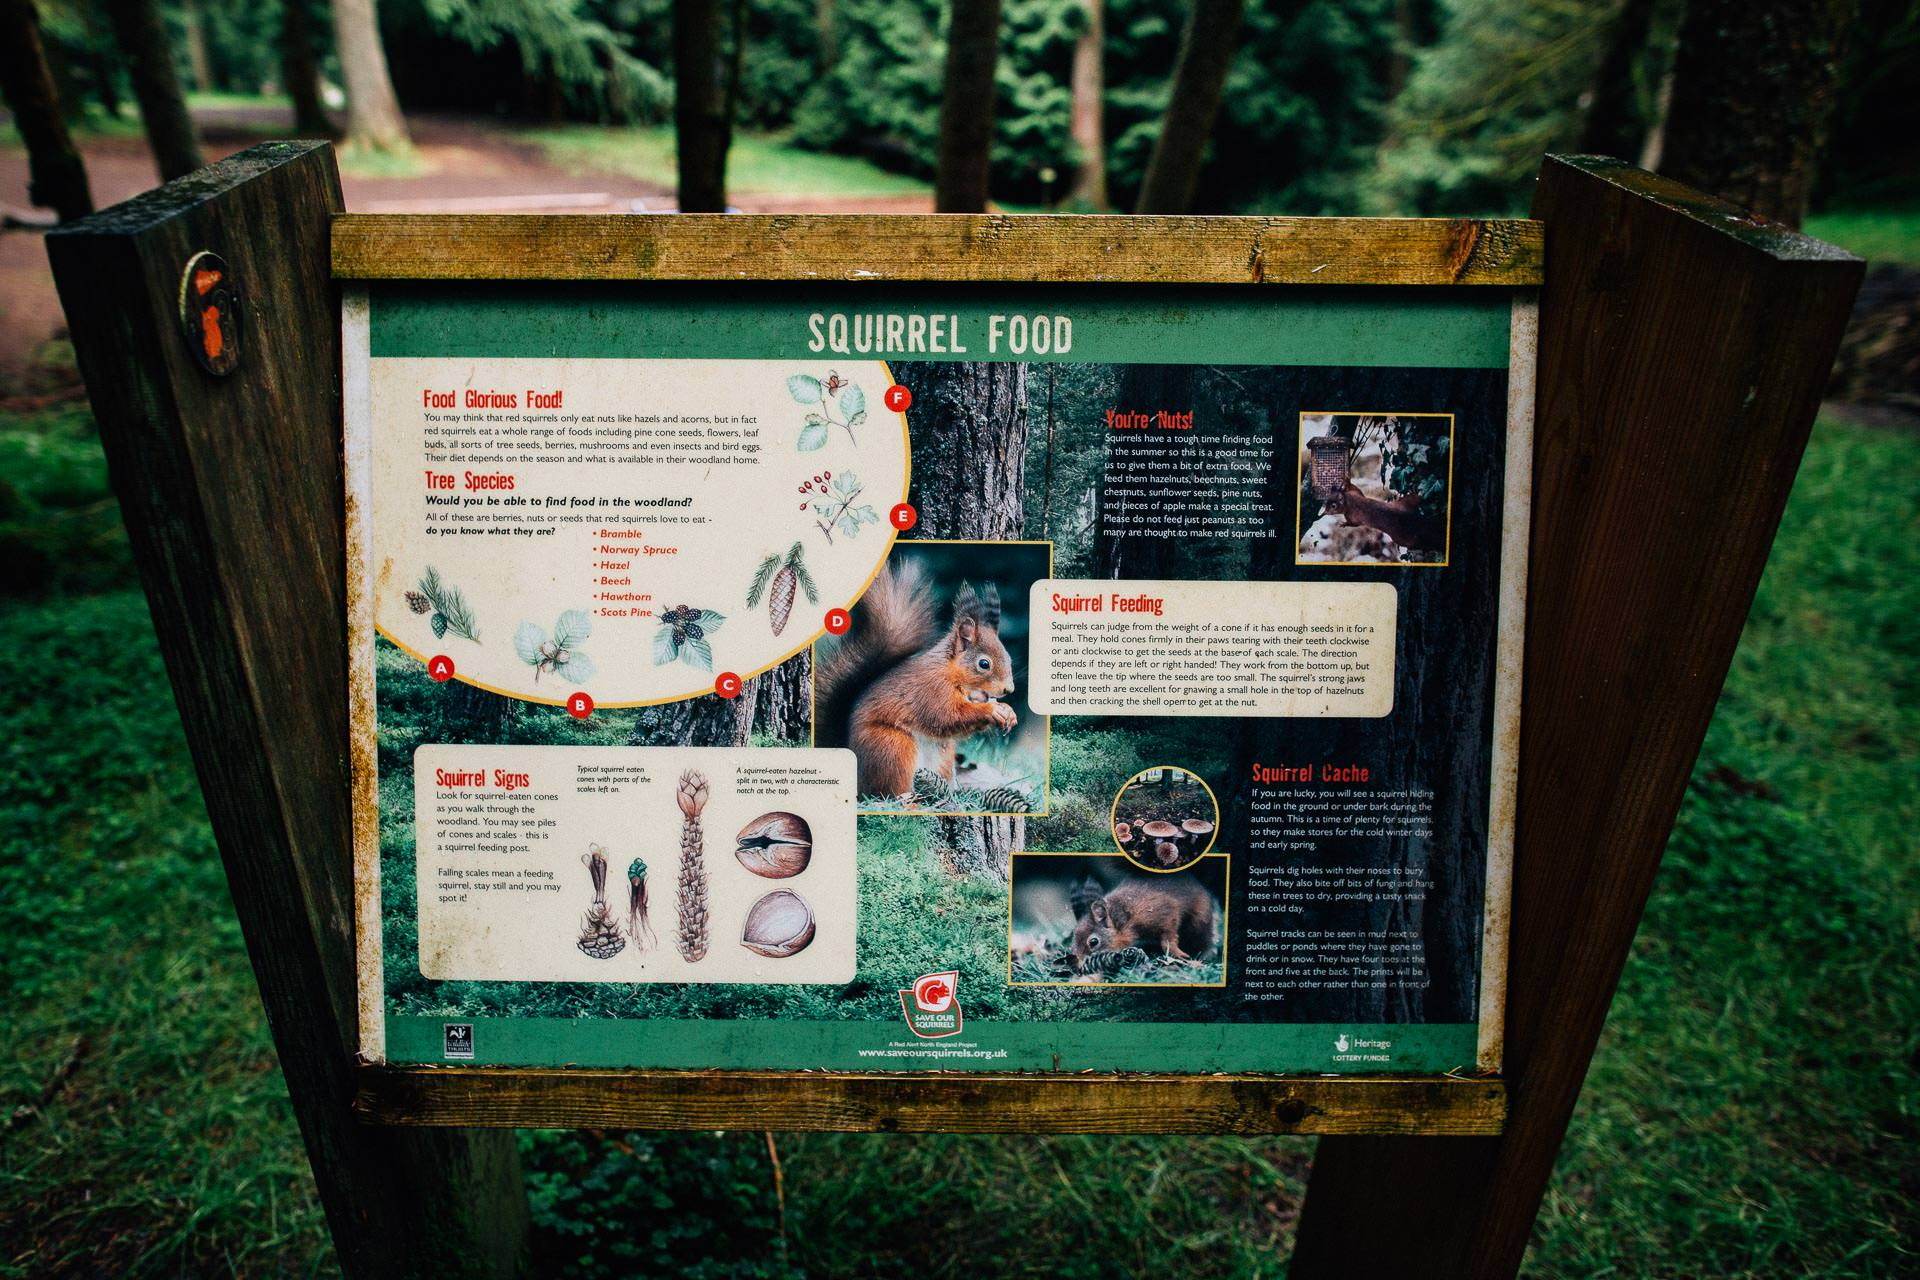 Whinlatter Pre Wedding Shoot Lake District - N&P - sign showing squirrel food in the woods